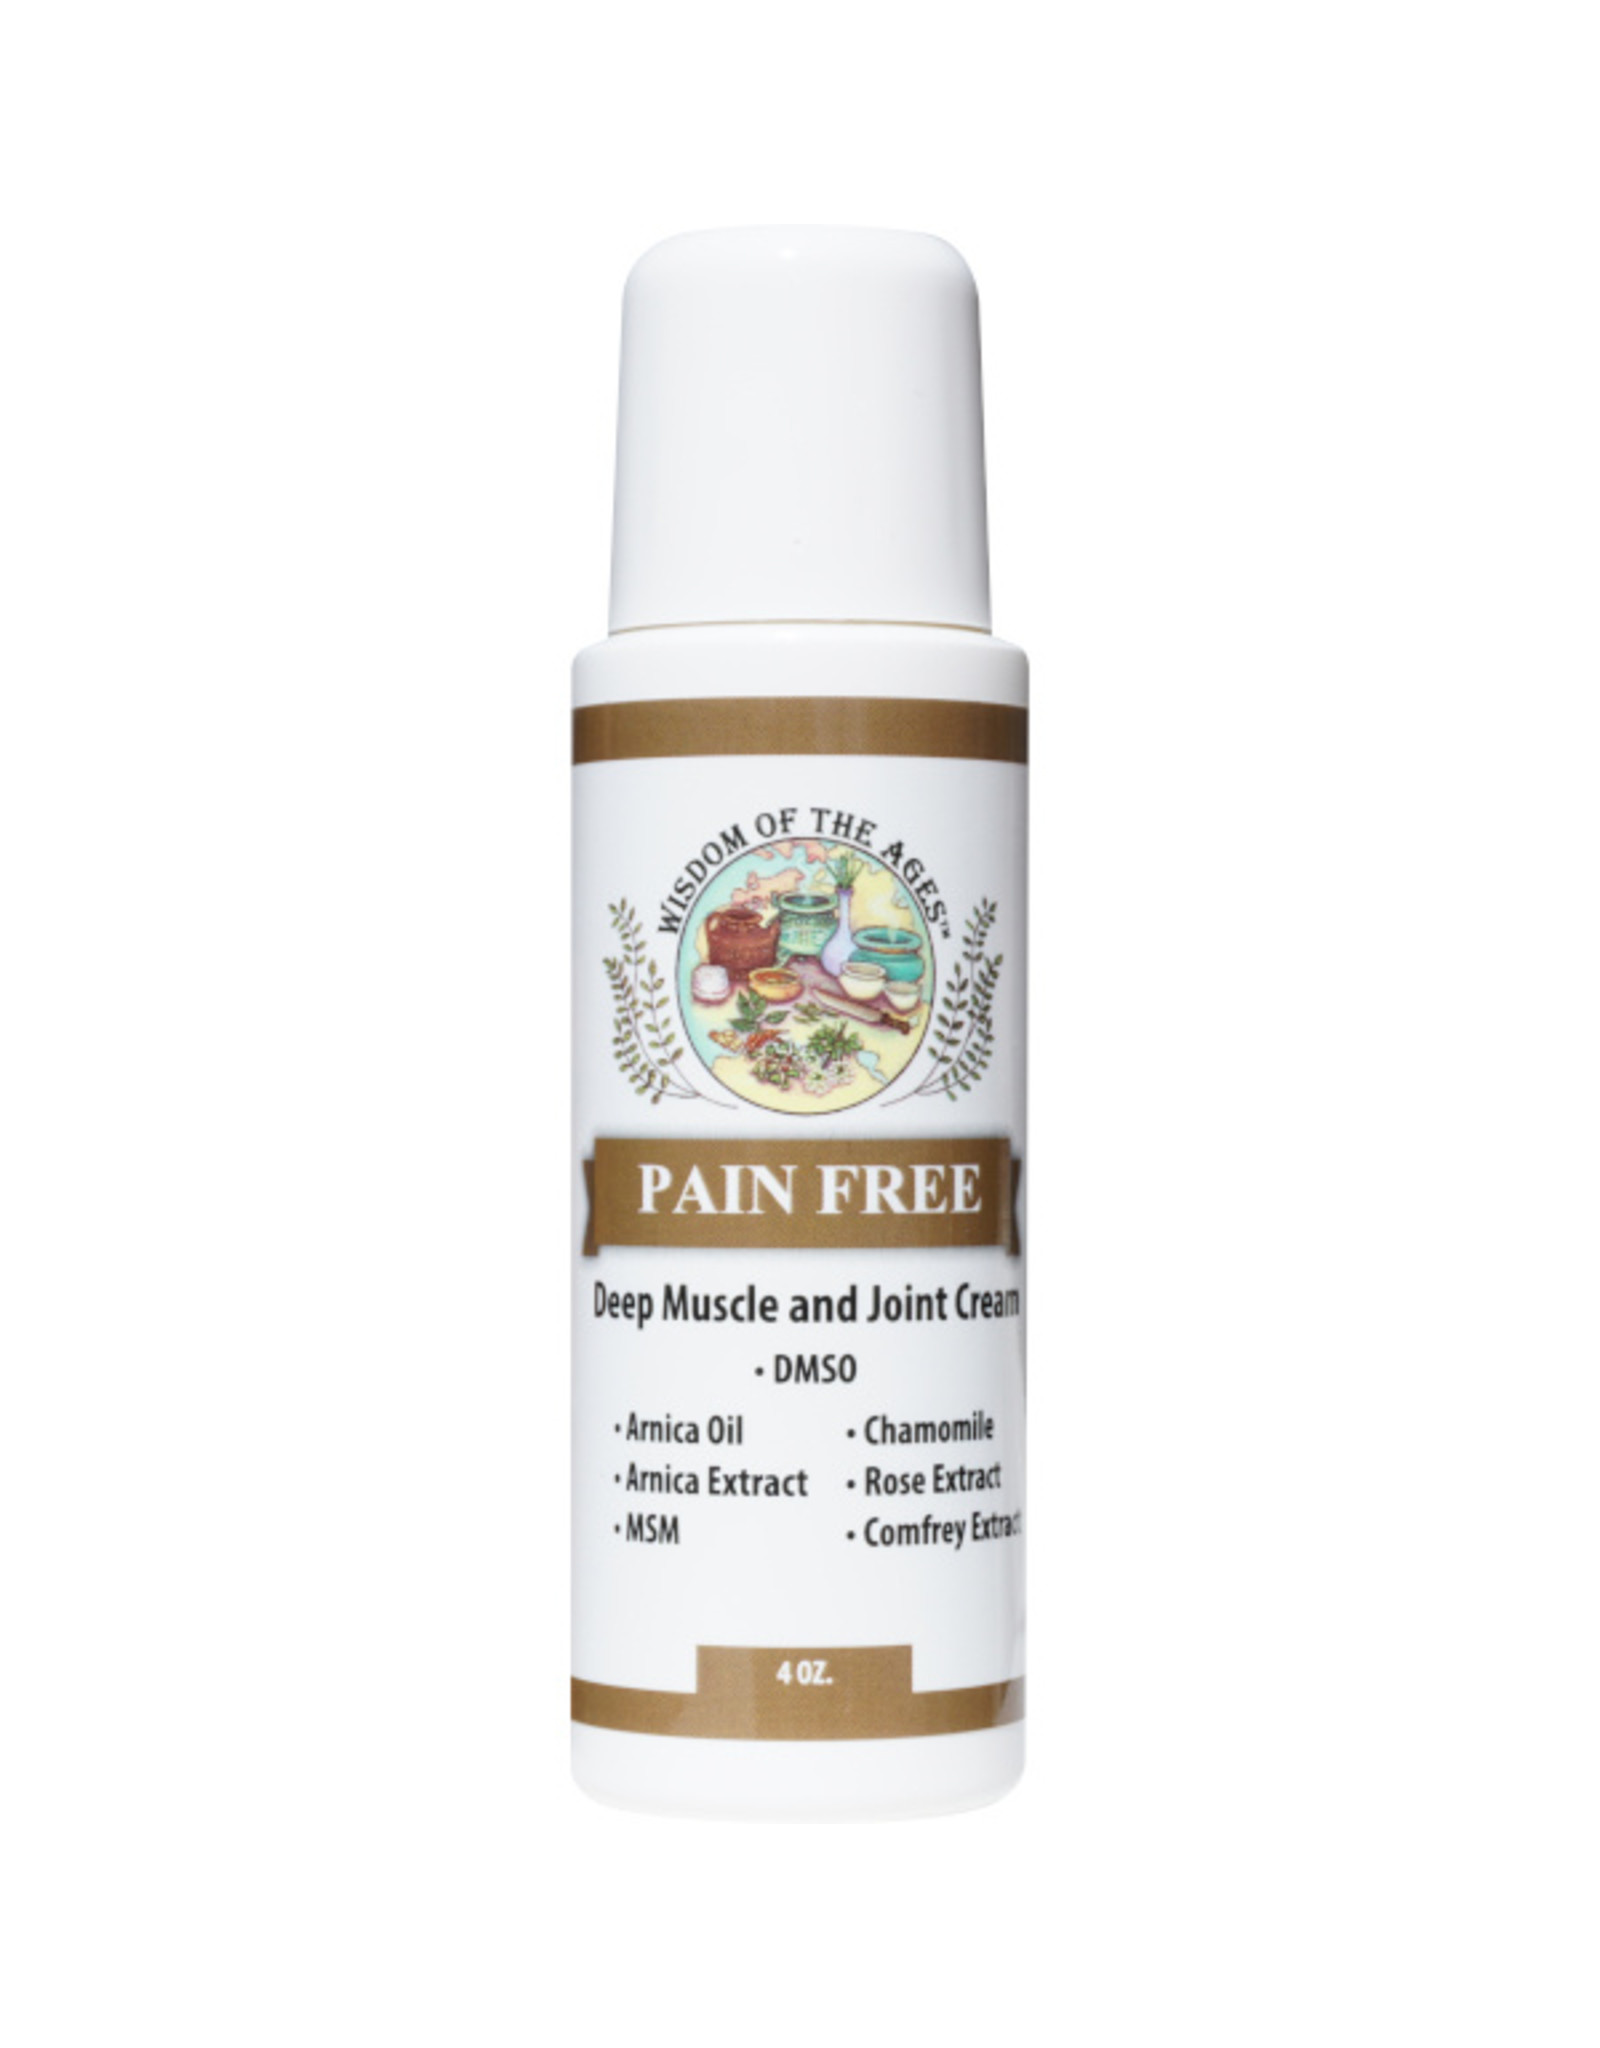 Wisdom of the Ages Pain Free Deep Muscle & Joint Pain Cream